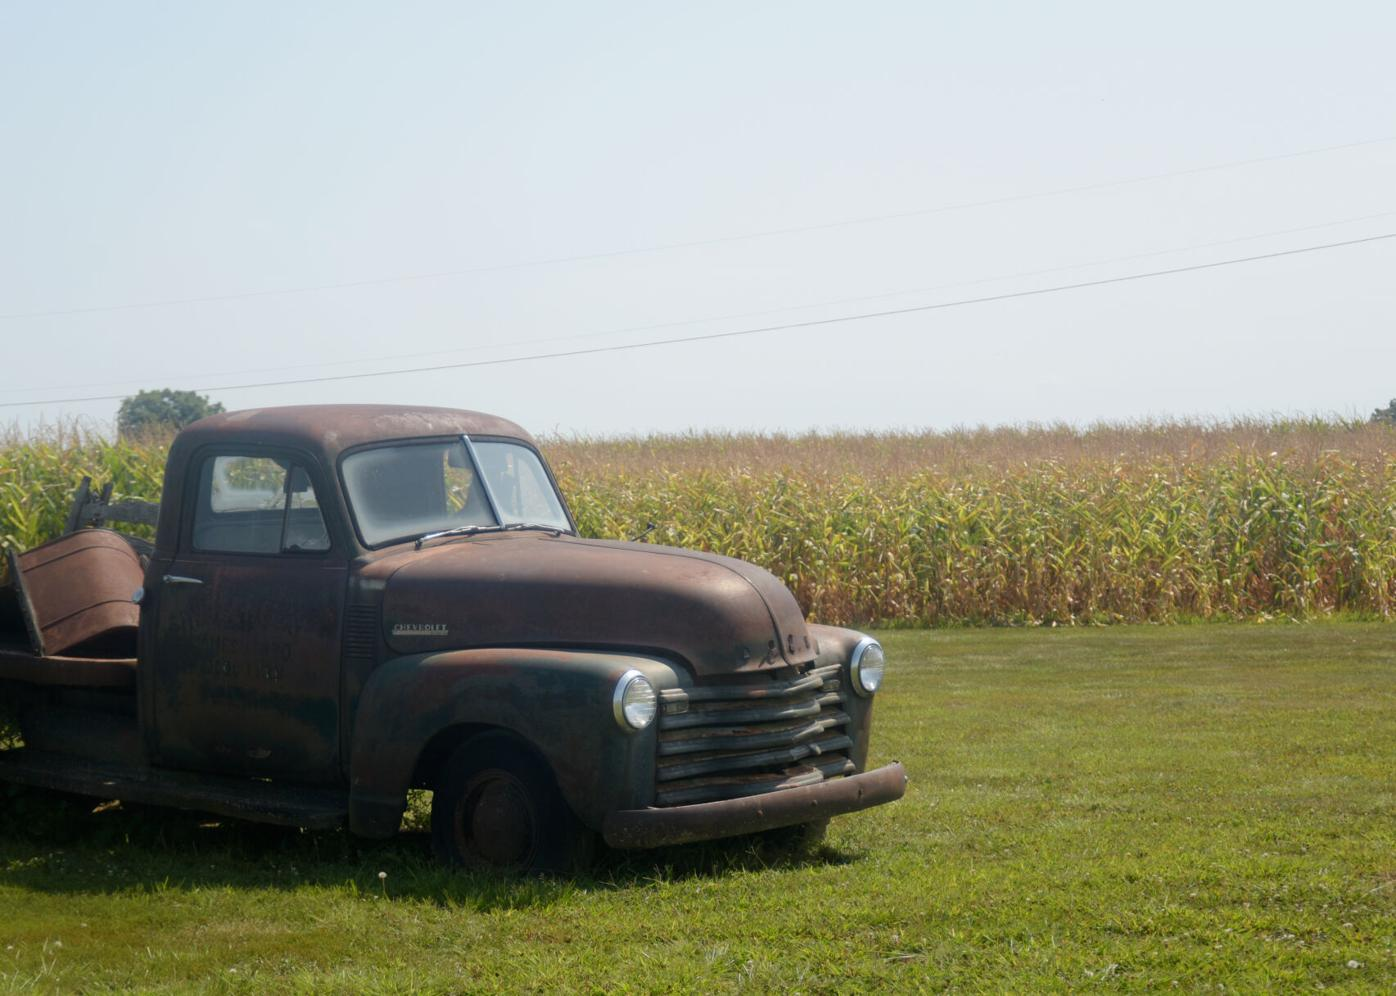 An old Chevrolet truck sits out by a cornfield